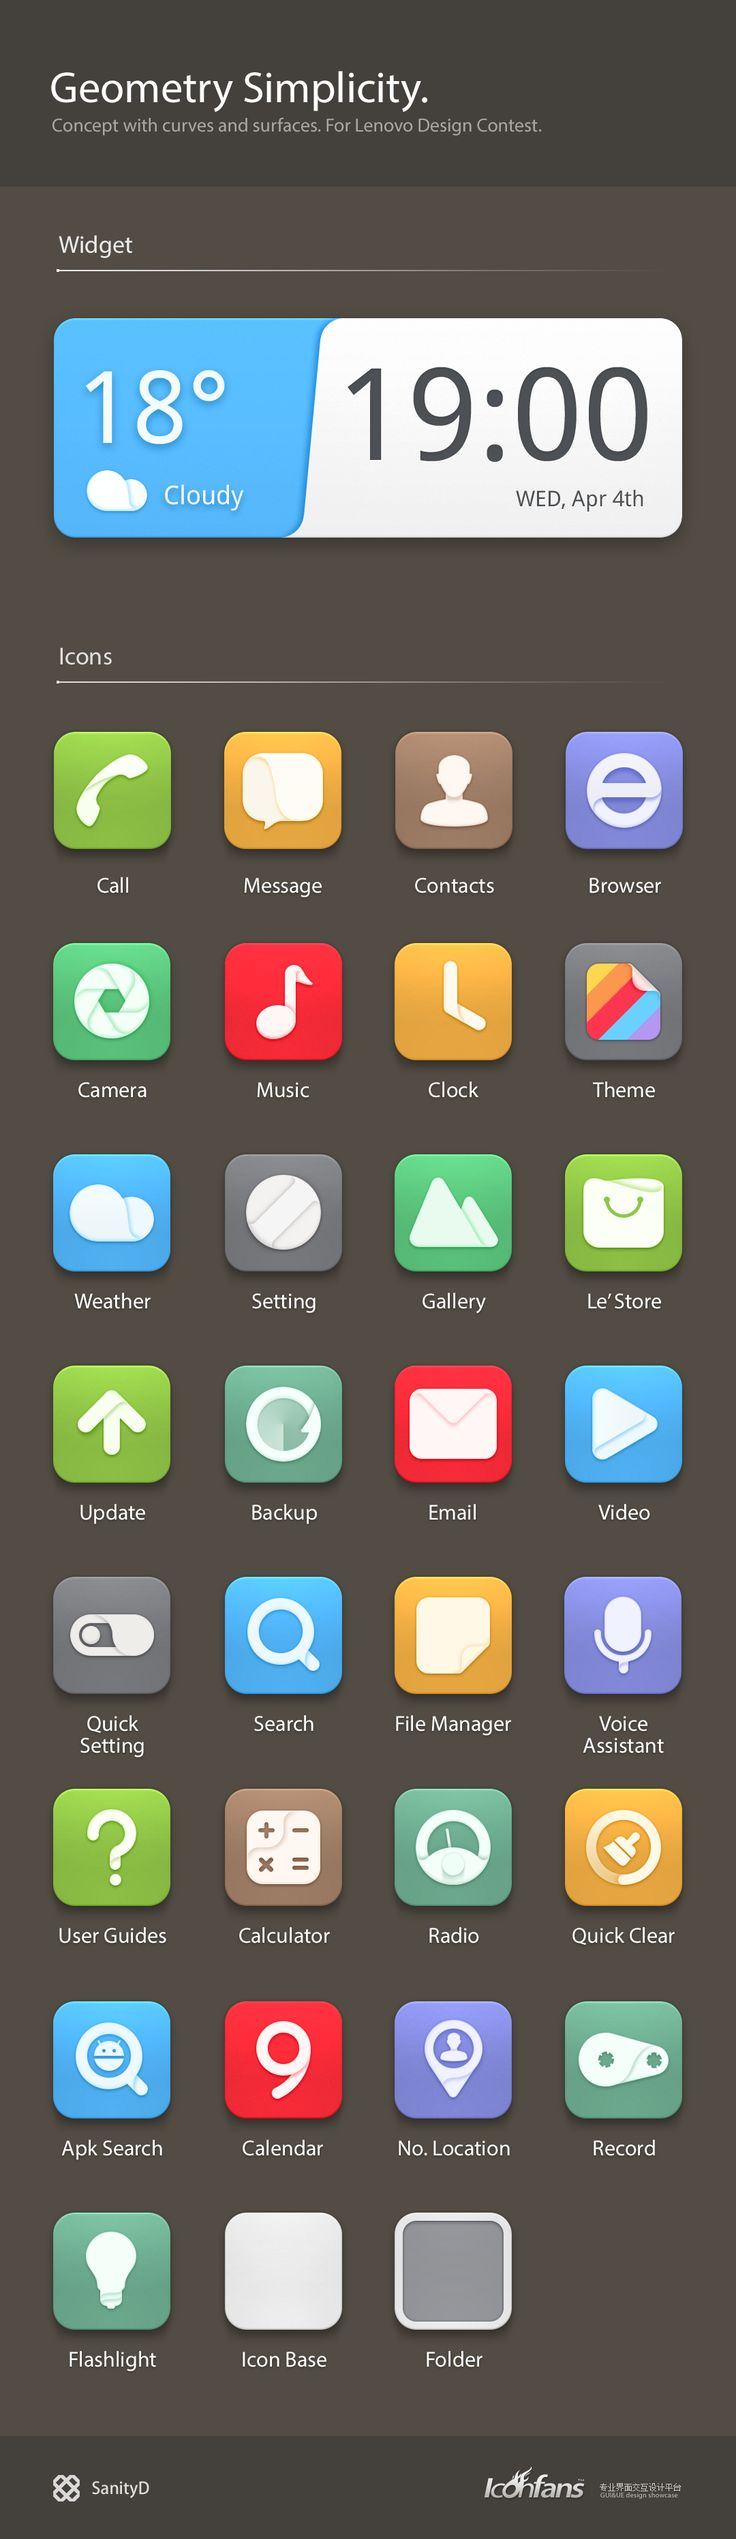 #app #appdesign #design #webapp #UI #UX #awesome #simple #interface #buttons #icons